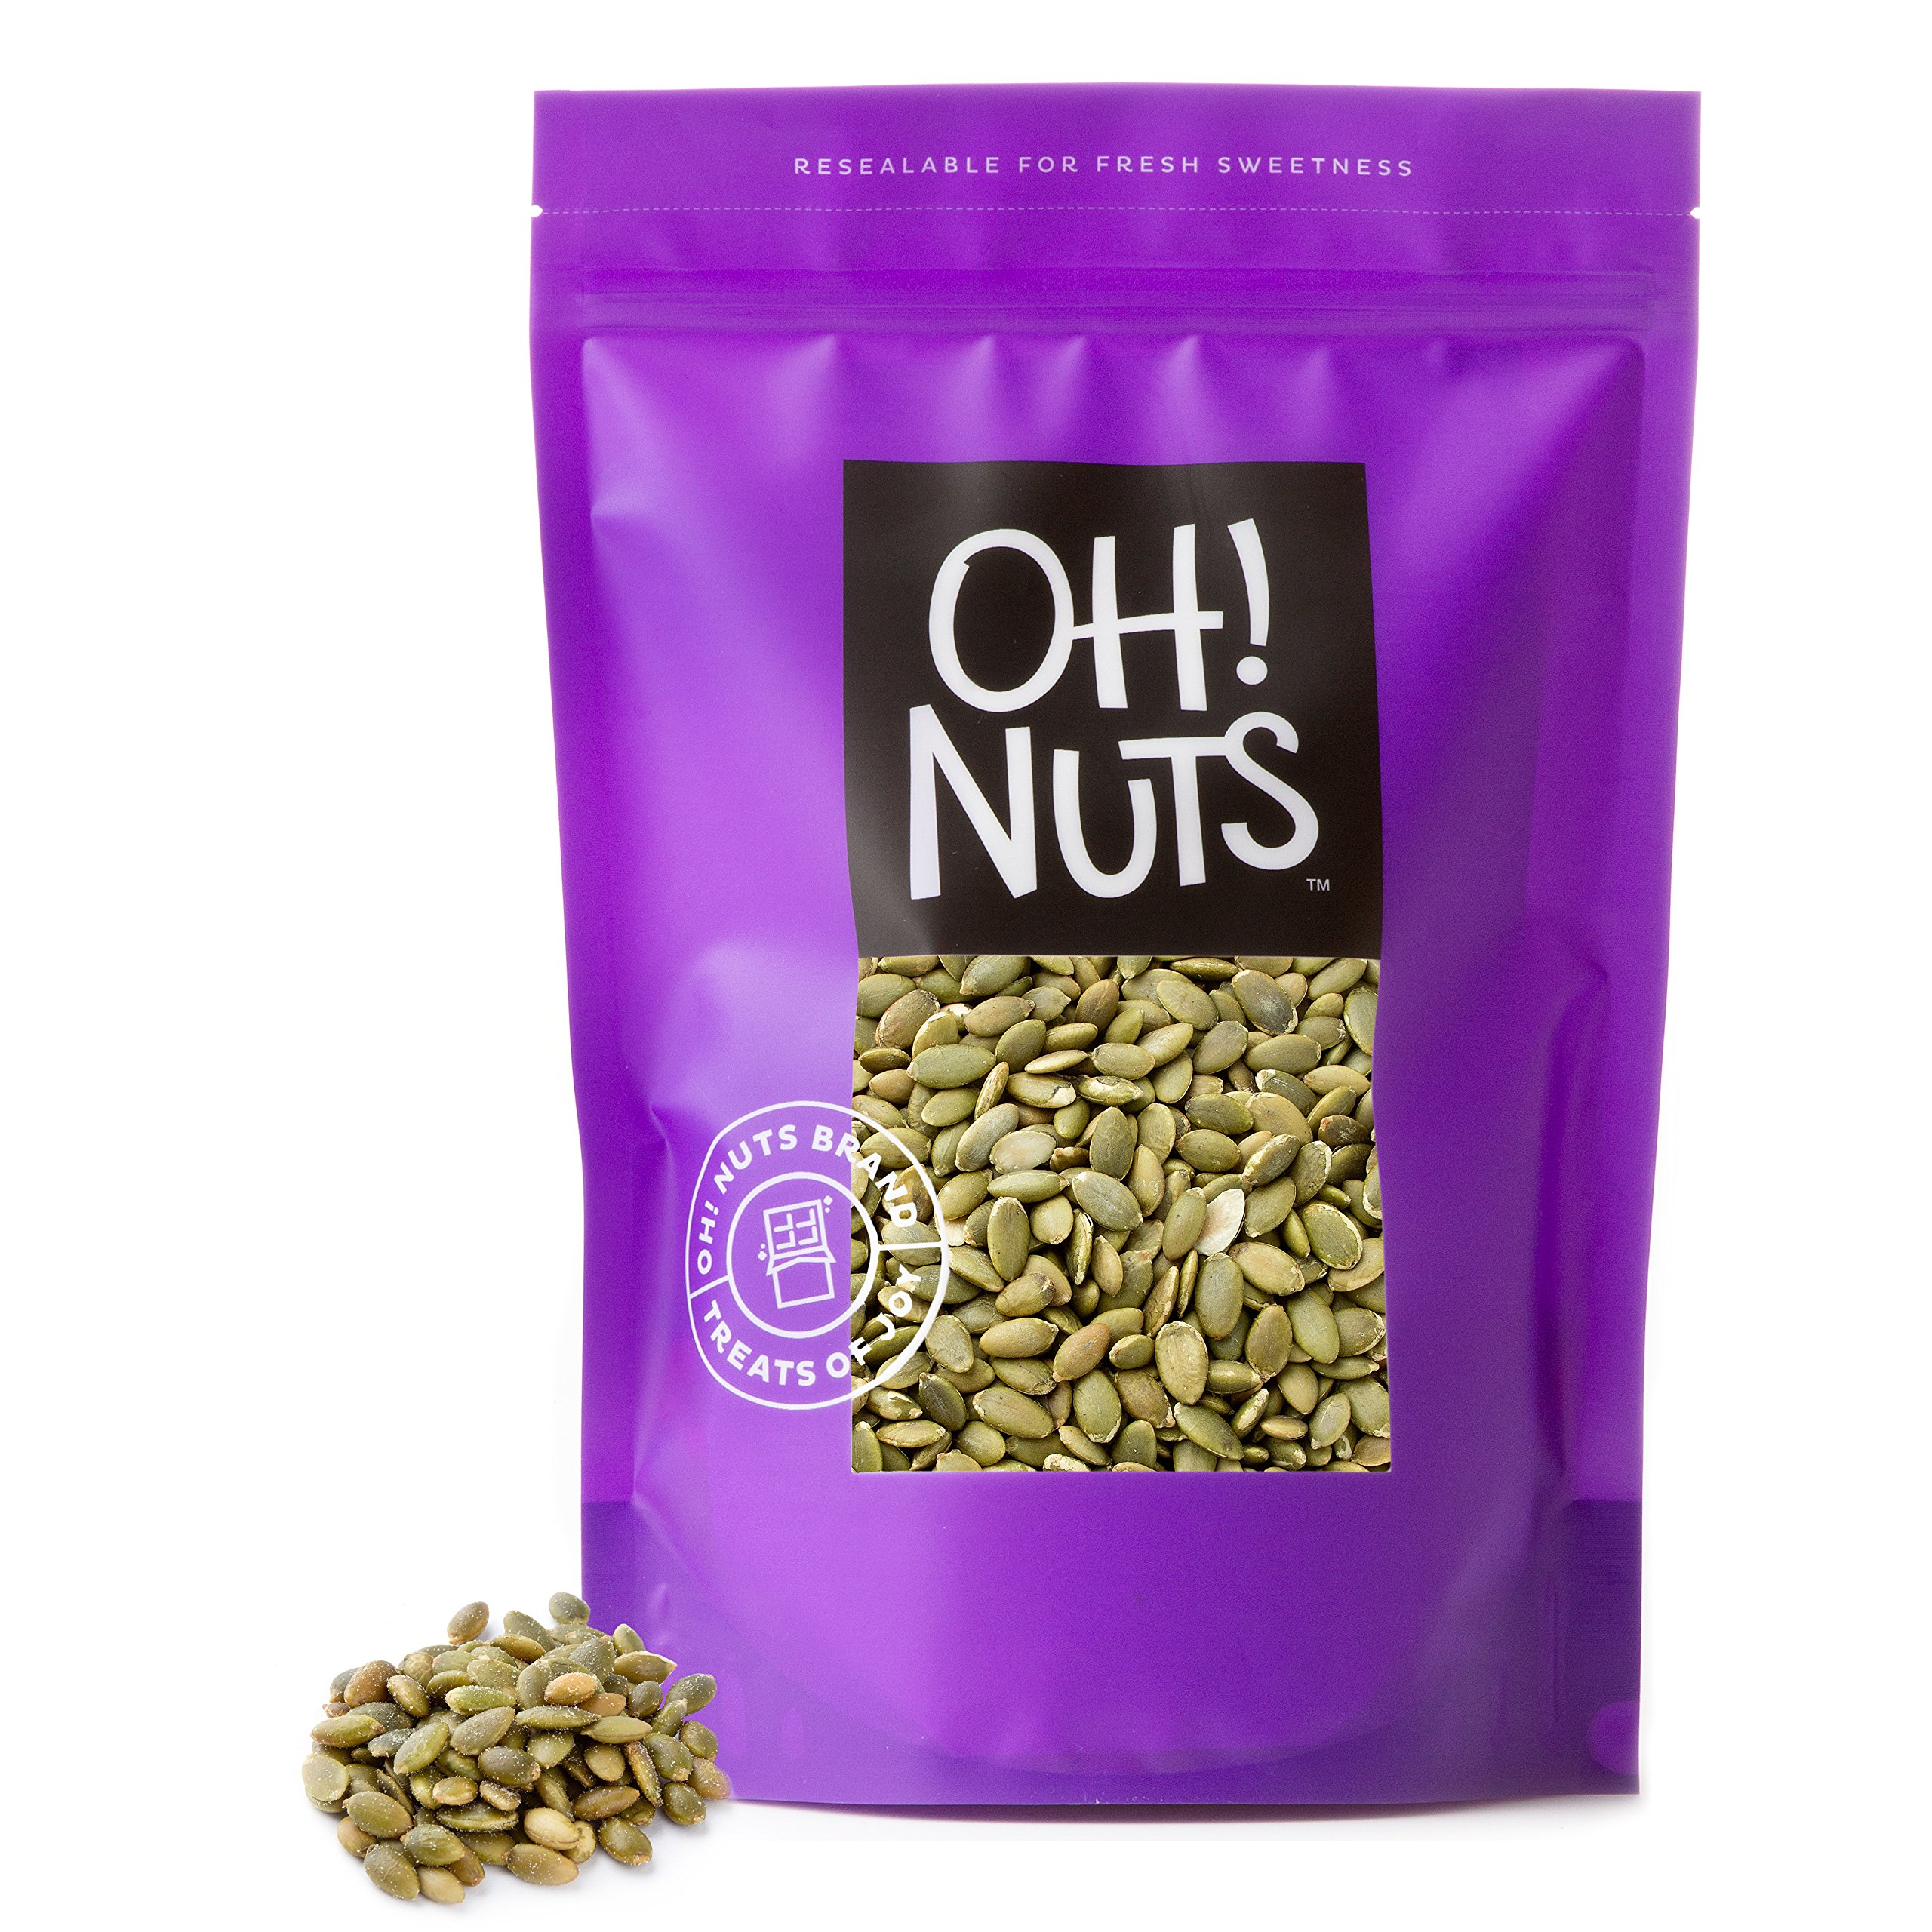 Pumpkin Seeds Raw Healthy Snack - Pepitas No Shell Unsalted High Proteins - Oh! Nuts ... (5 LB Bag)